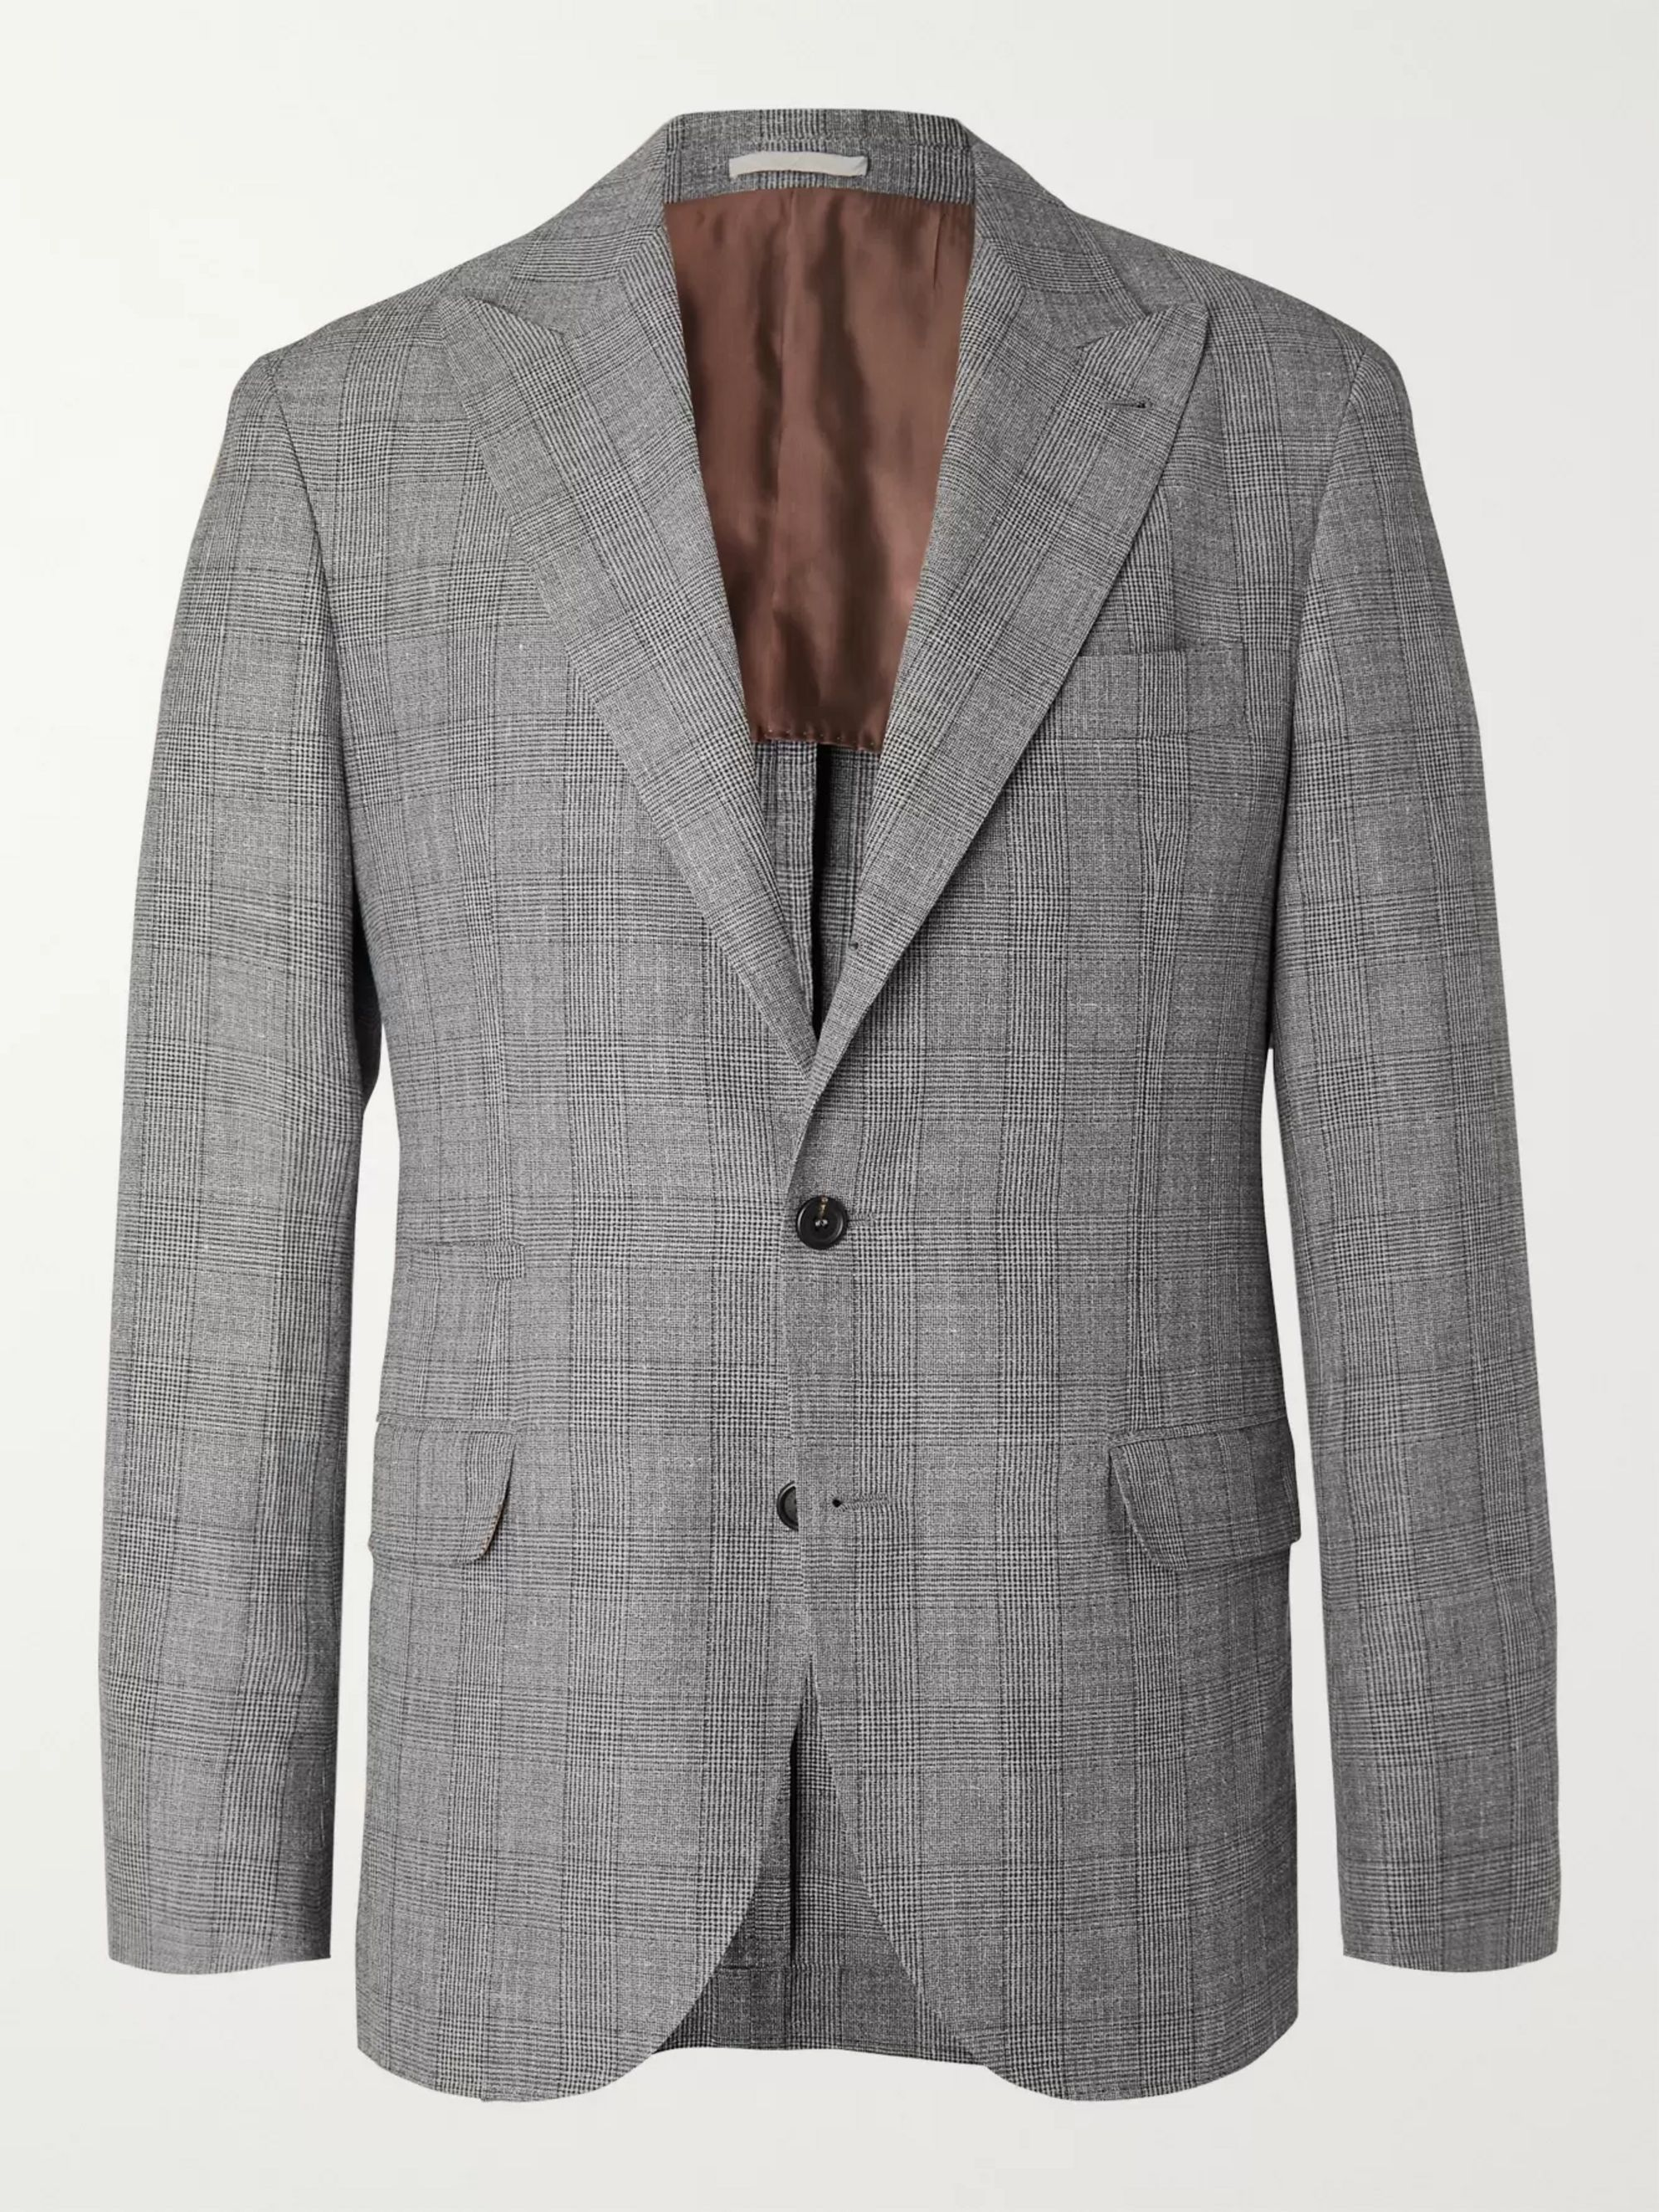 Brunello Cucinelli Grey Prince of Wales Checked Wool, Linen and Silk-Blend Suit Jacket